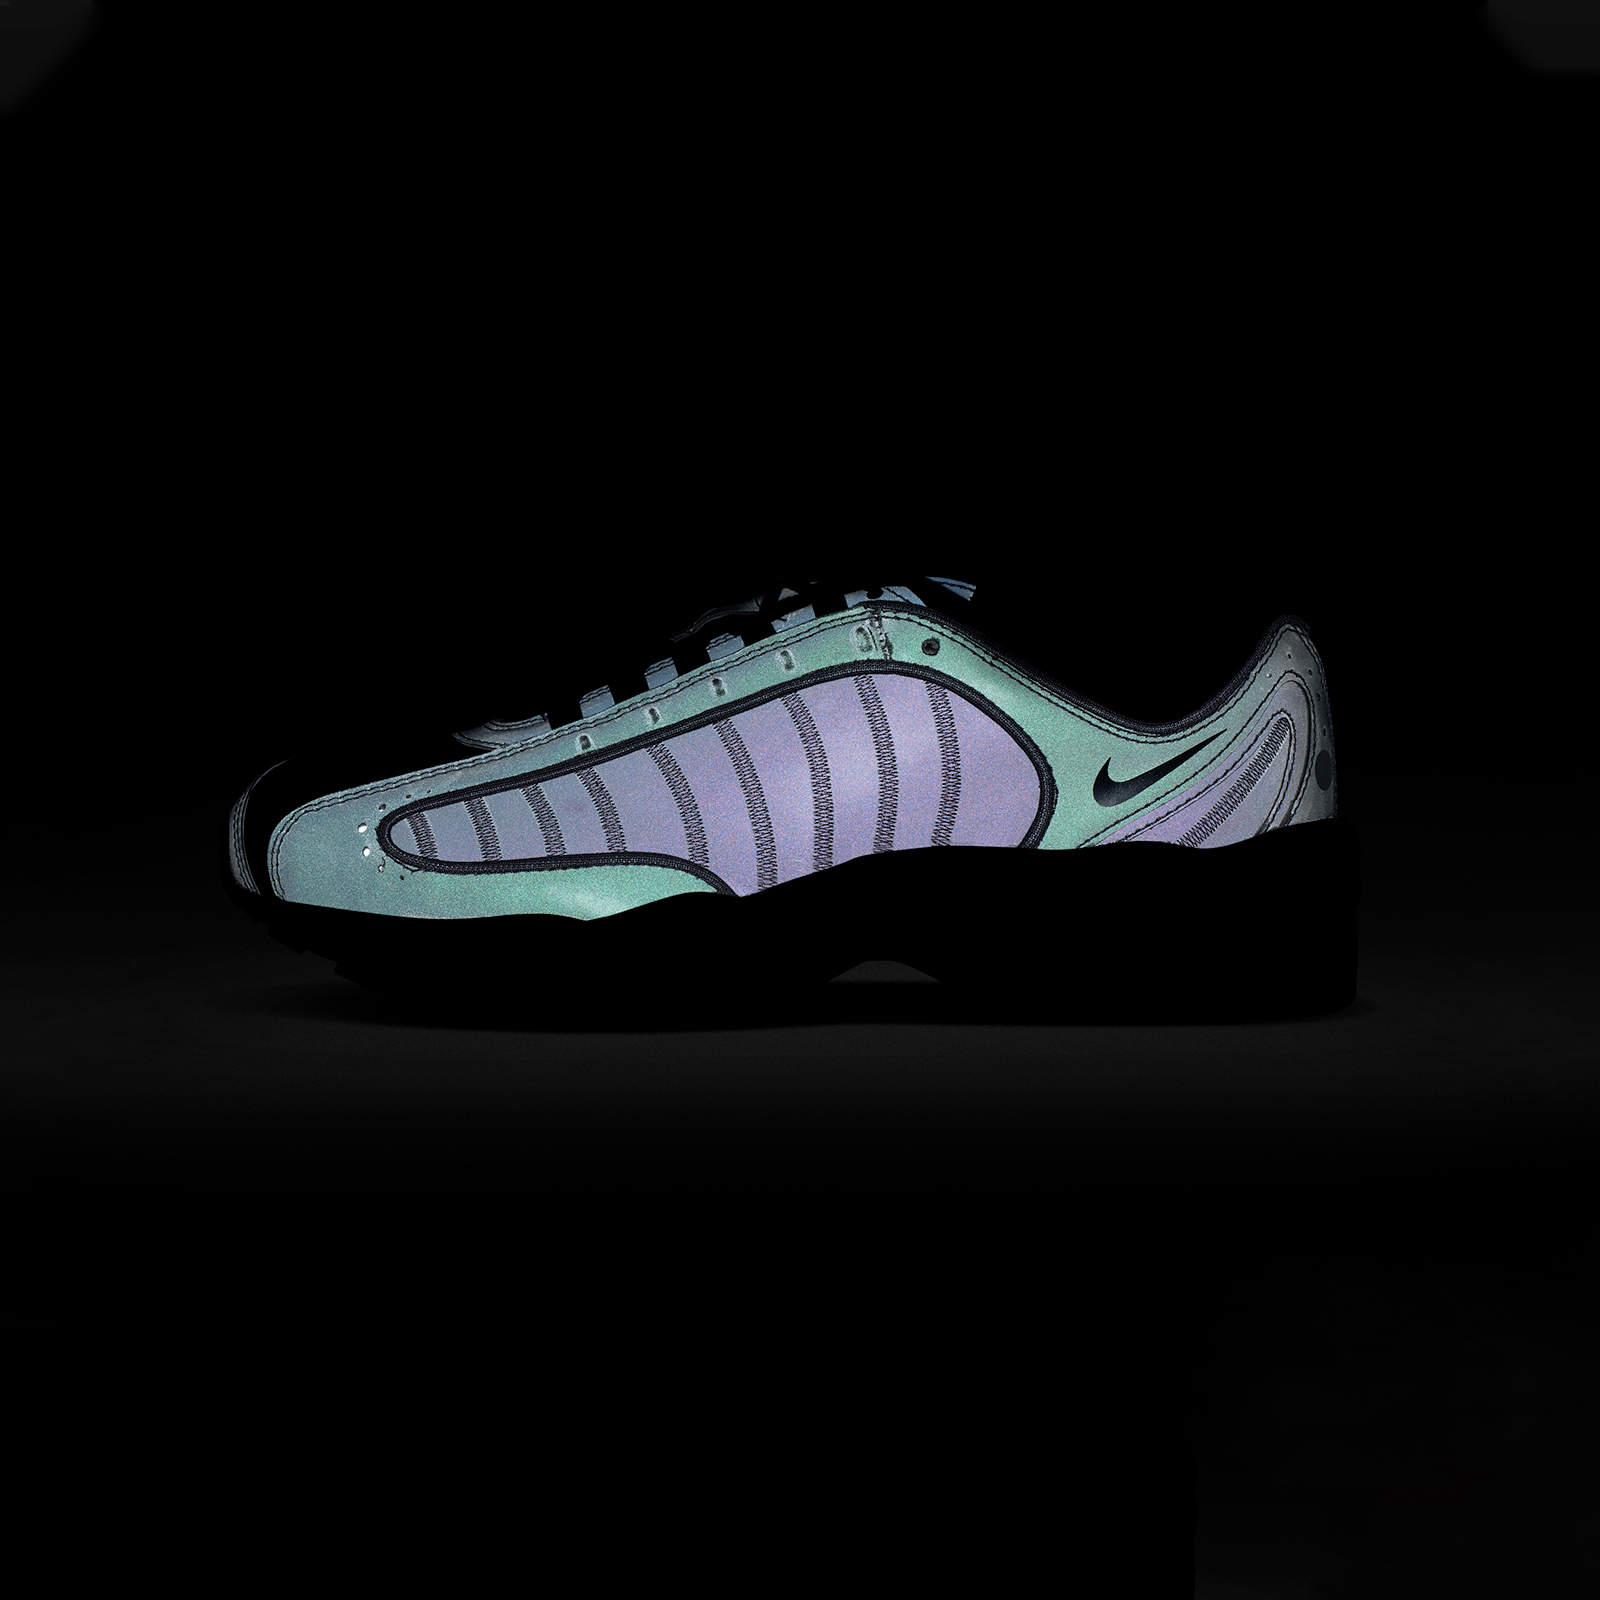 Nike Air Max Tailwind 99 SP - Cq6569-001 - SNS | sneakers ...